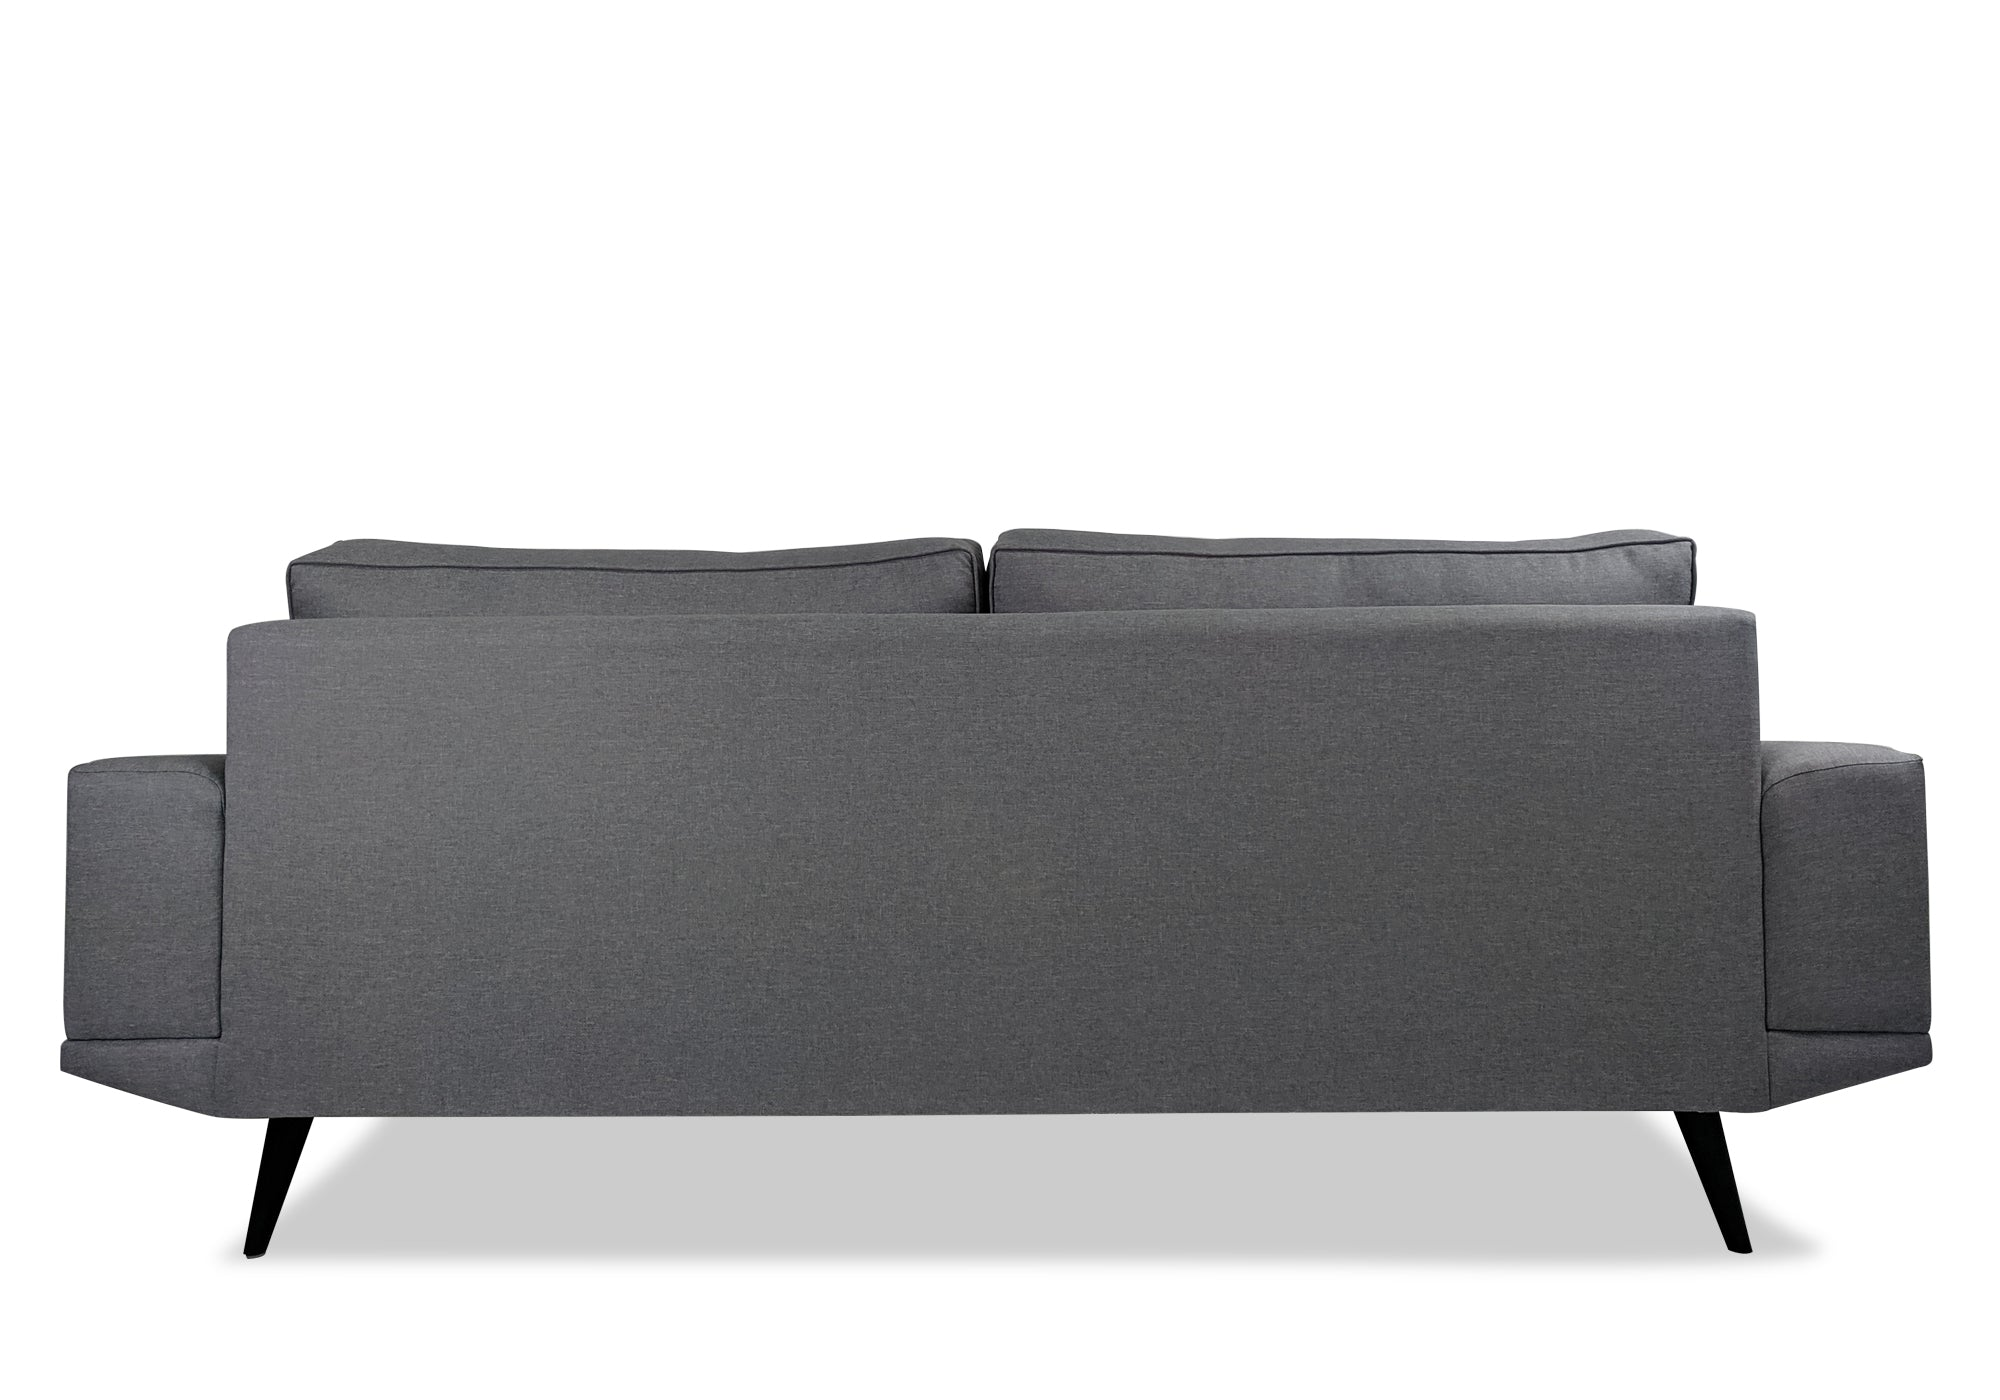 Swell Lyndon 2 75 Seater Sofa Handcrafted In Perth Domain Caraccident5 Cool Chair Designs And Ideas Caraccident5Info